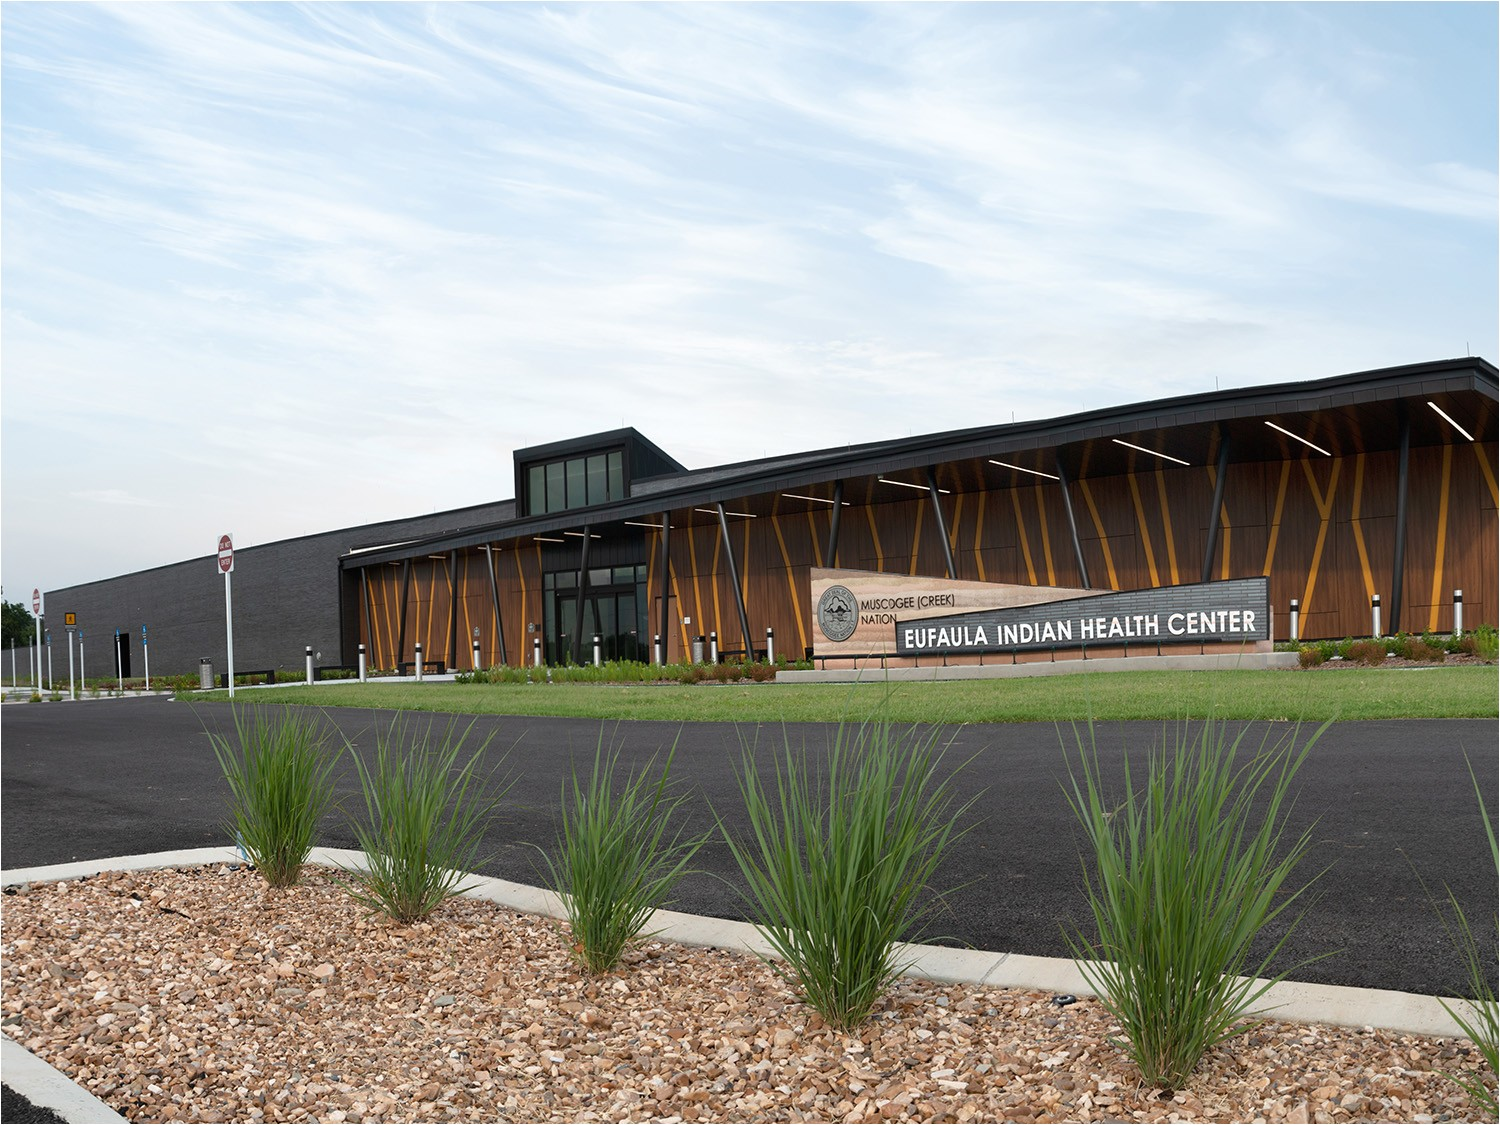 muscogee creek nation s new eufaula indian health center facility opened its doors aug